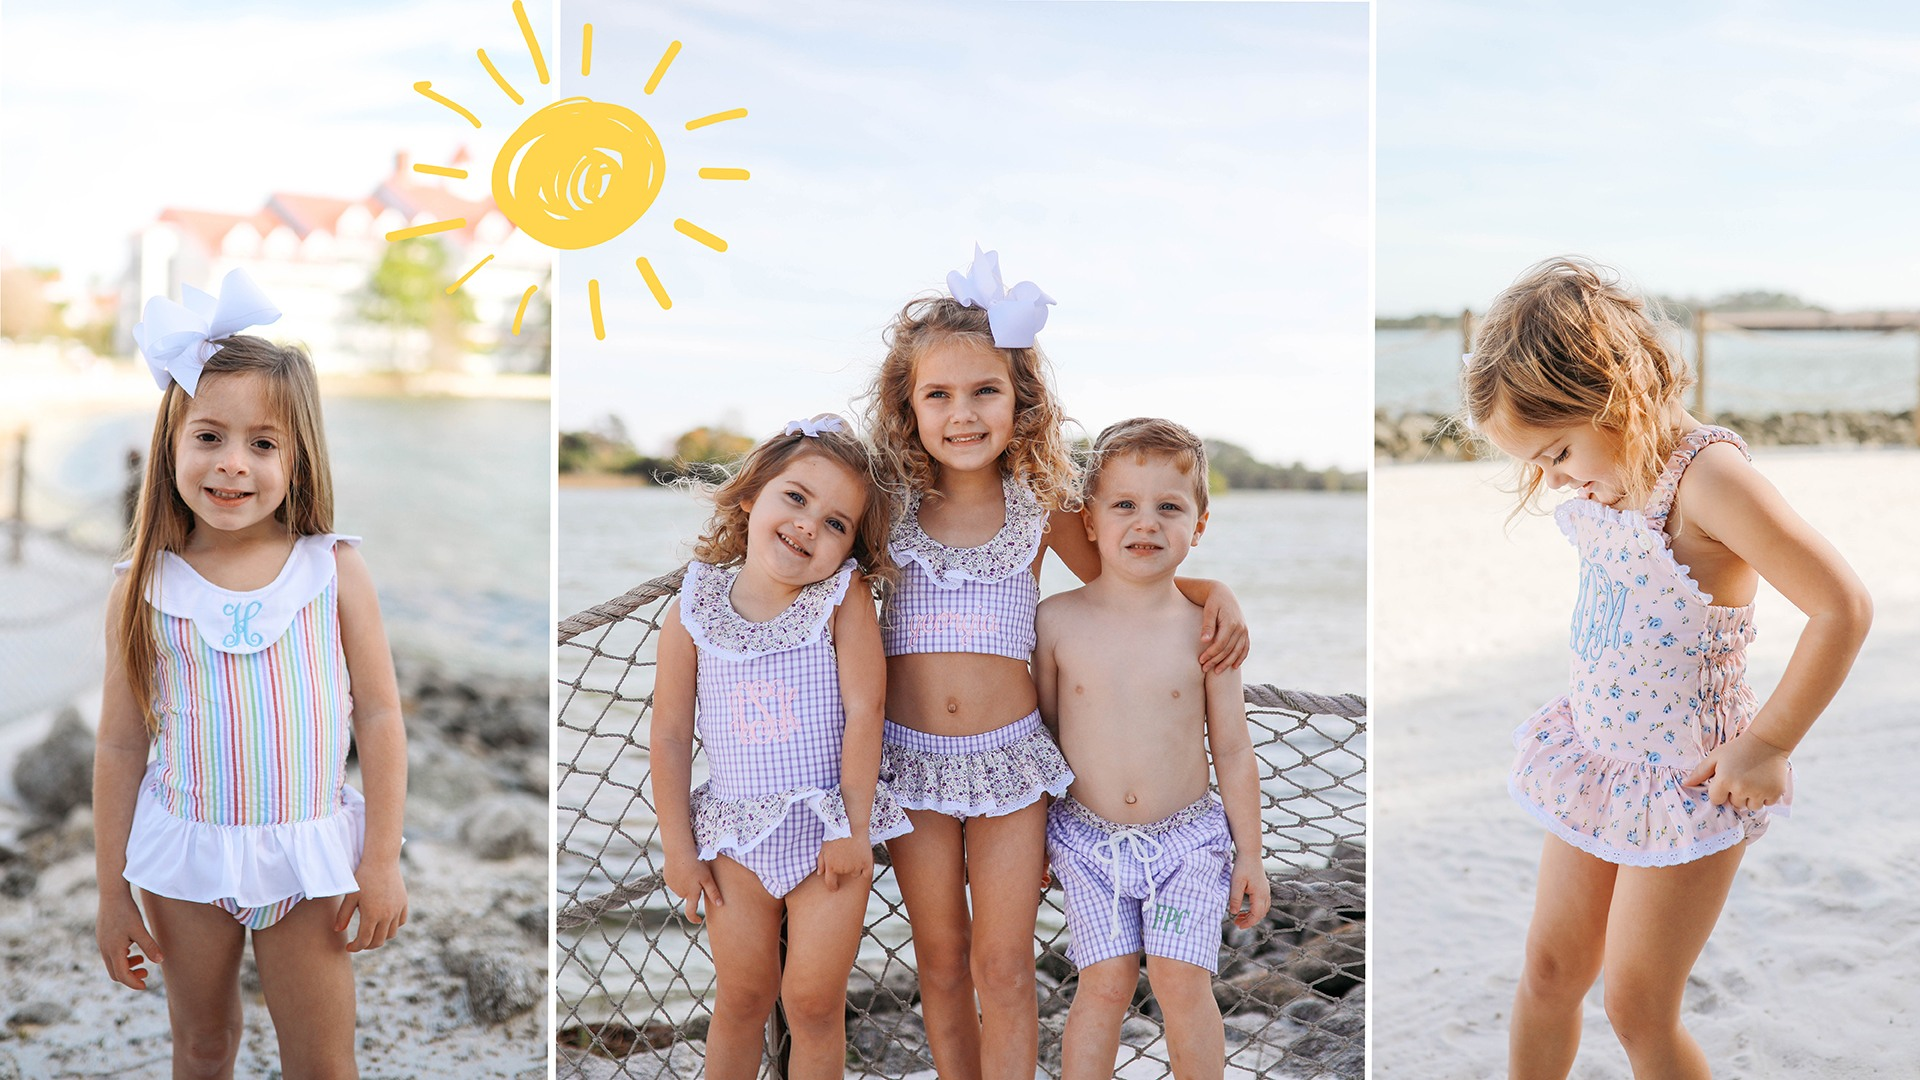 childrens swimsuits and accessories